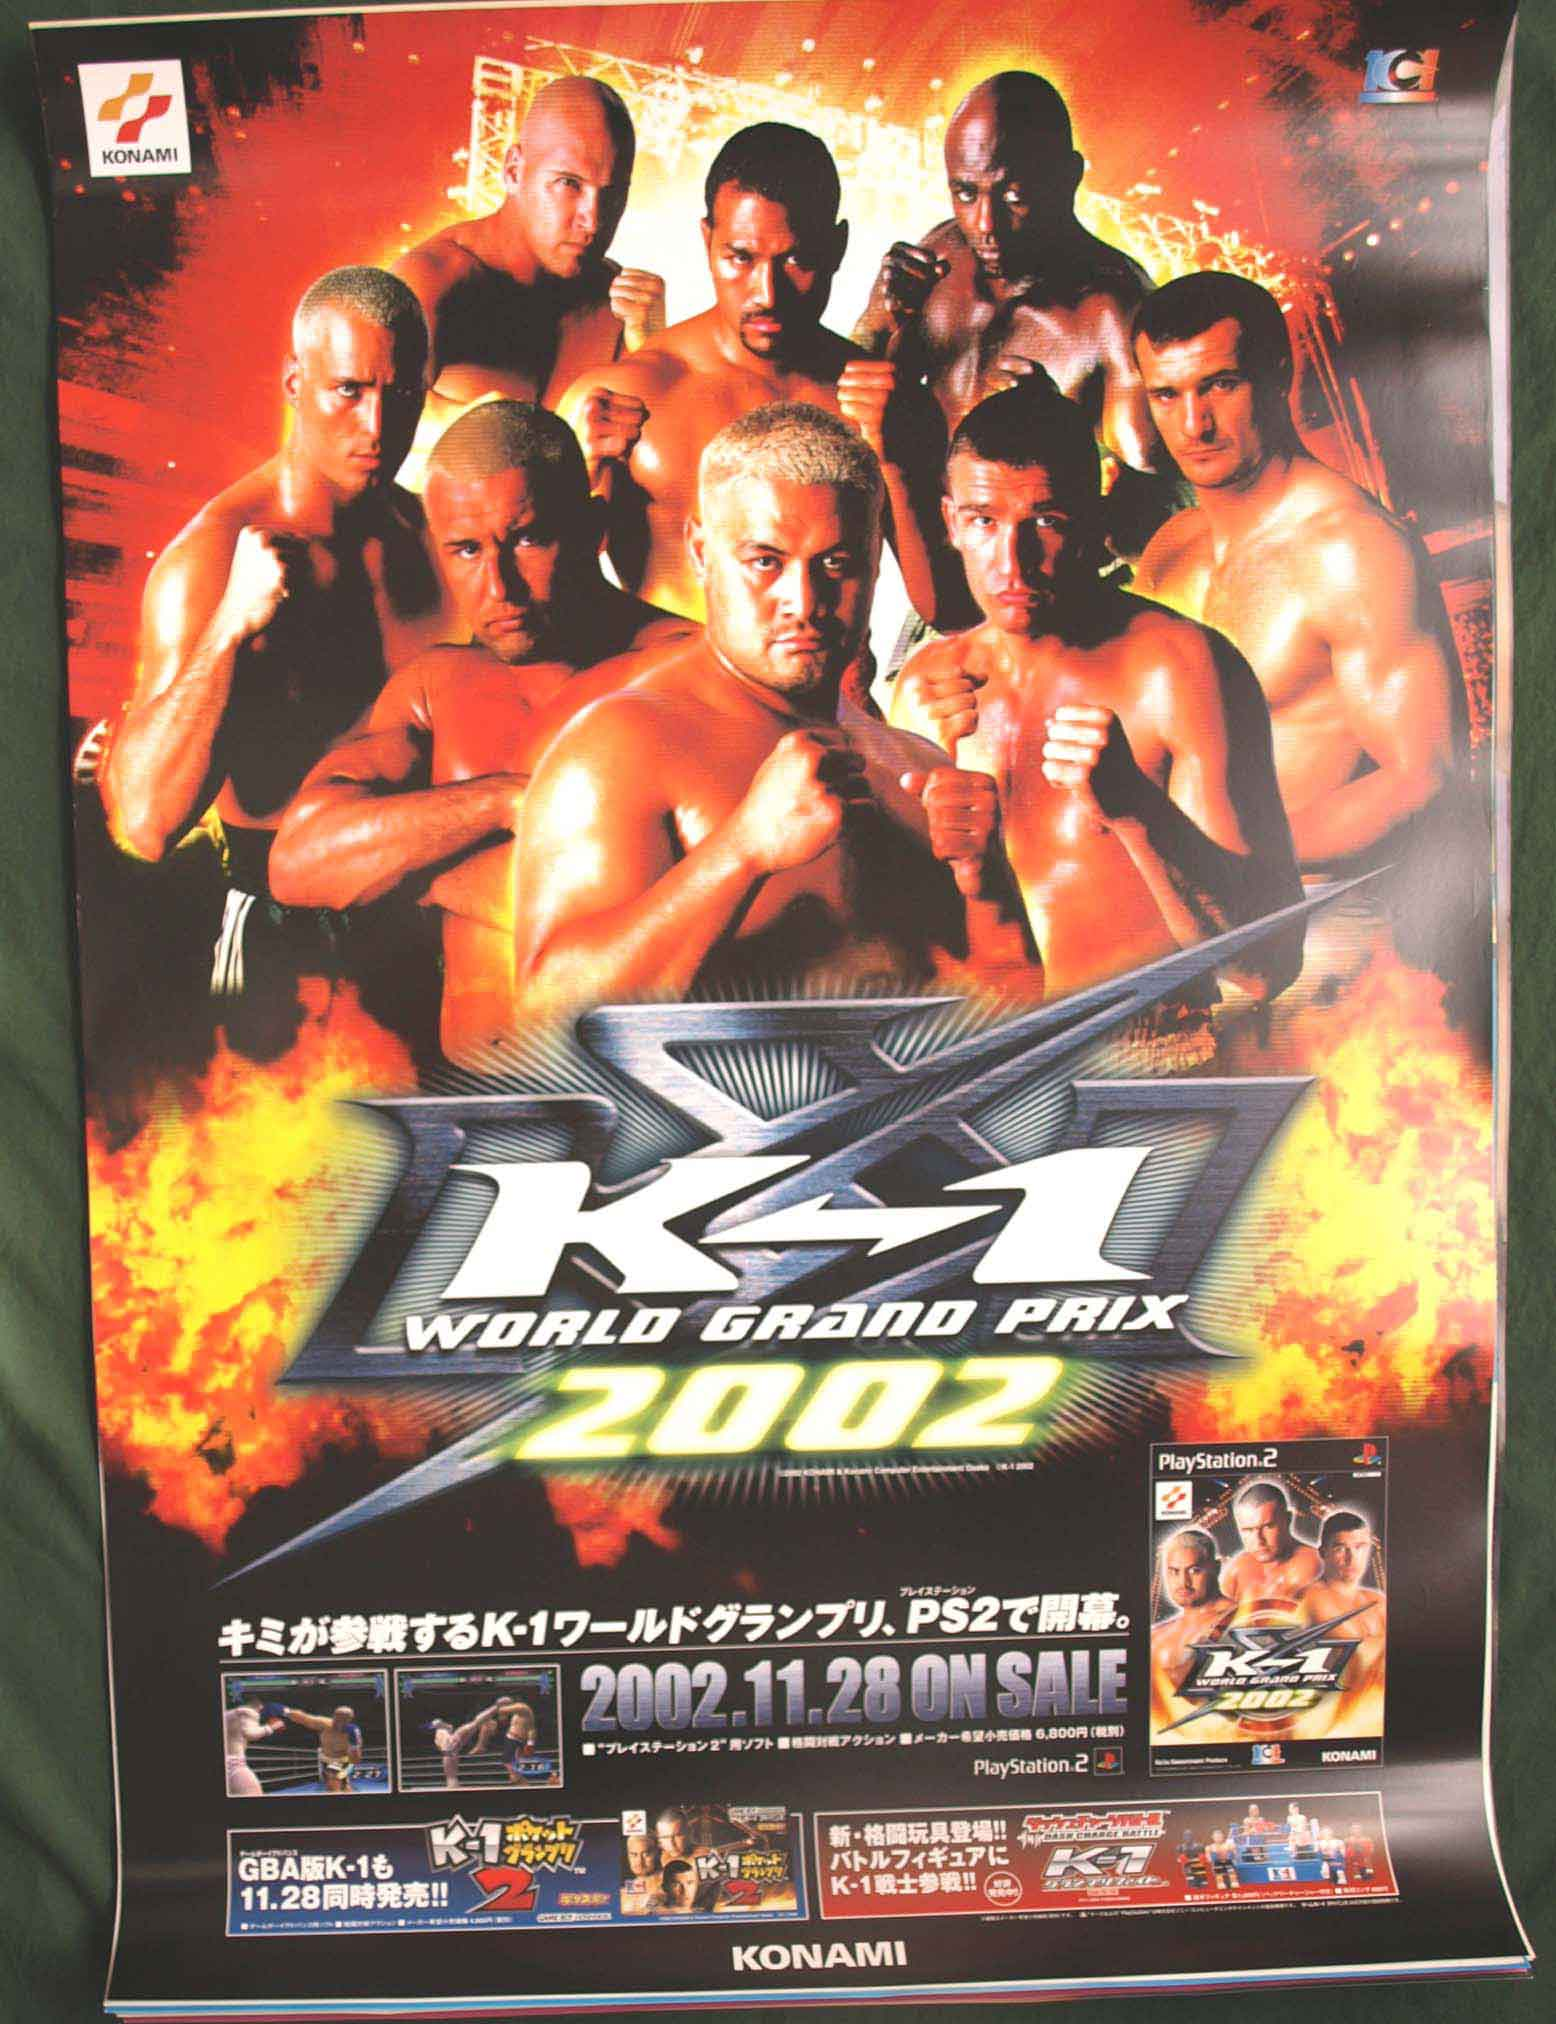 K-1 WORLD GRAND PRIX 2002のポスター